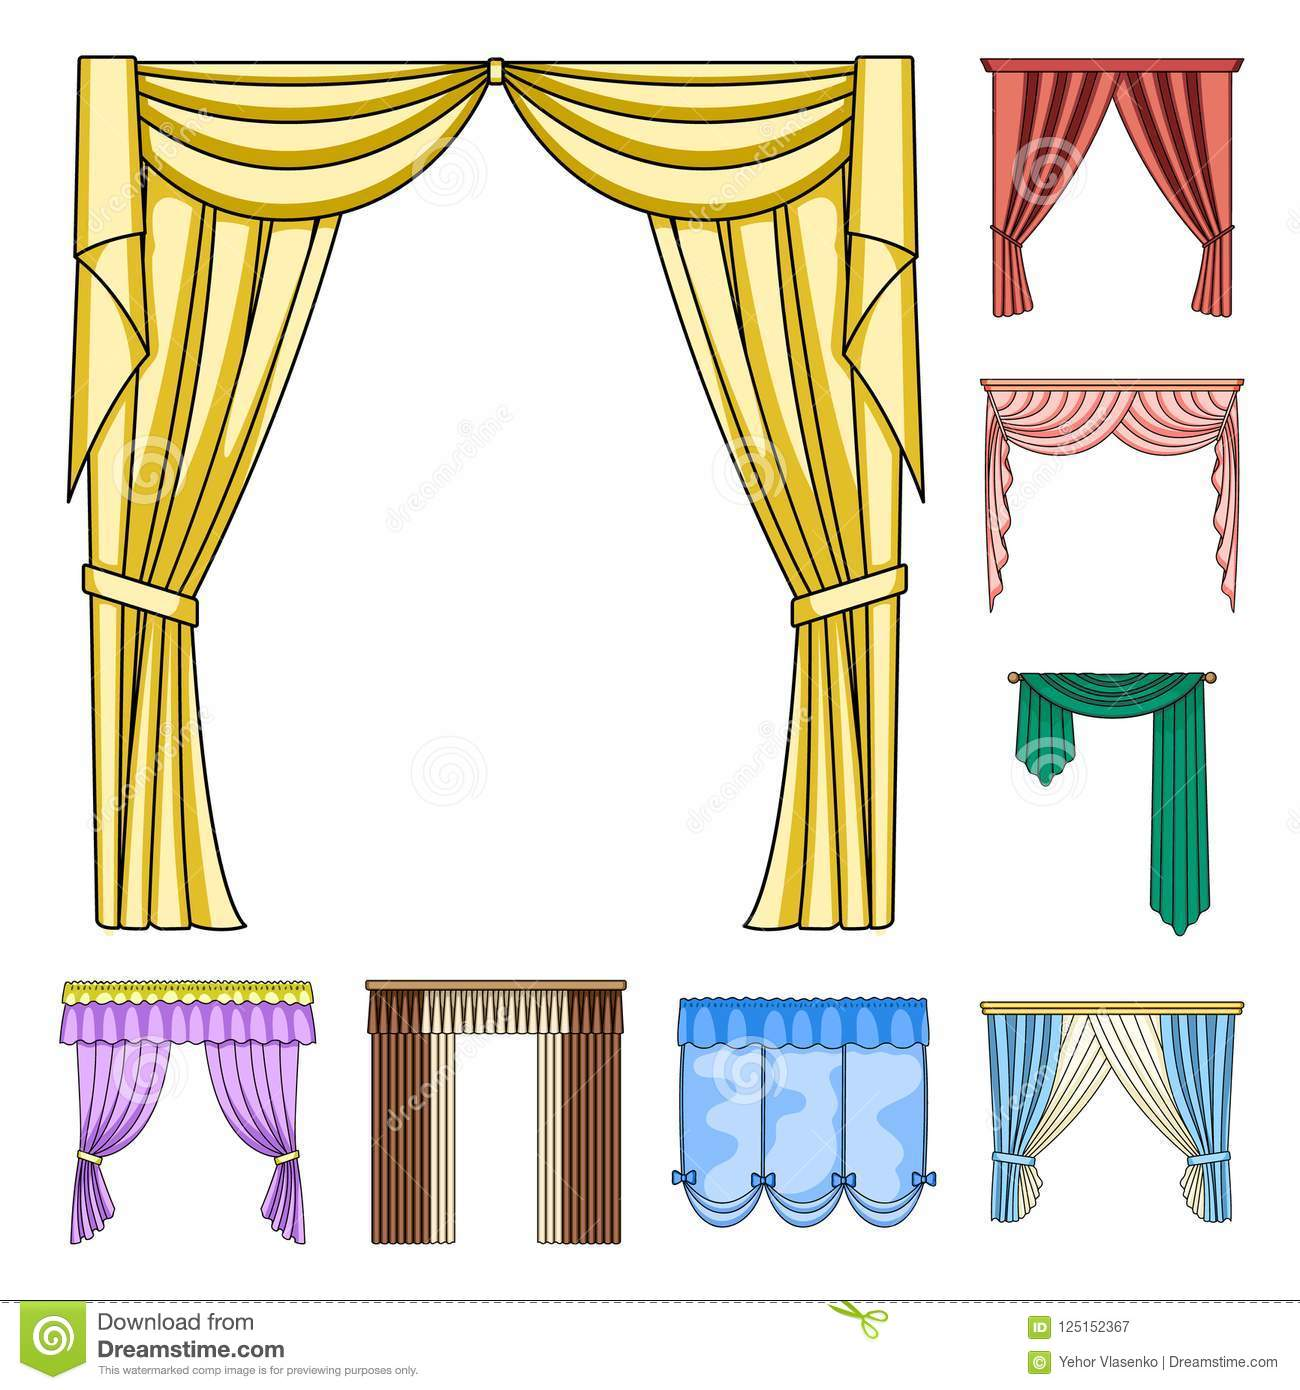 What is the drapery of curtains and lambrequins